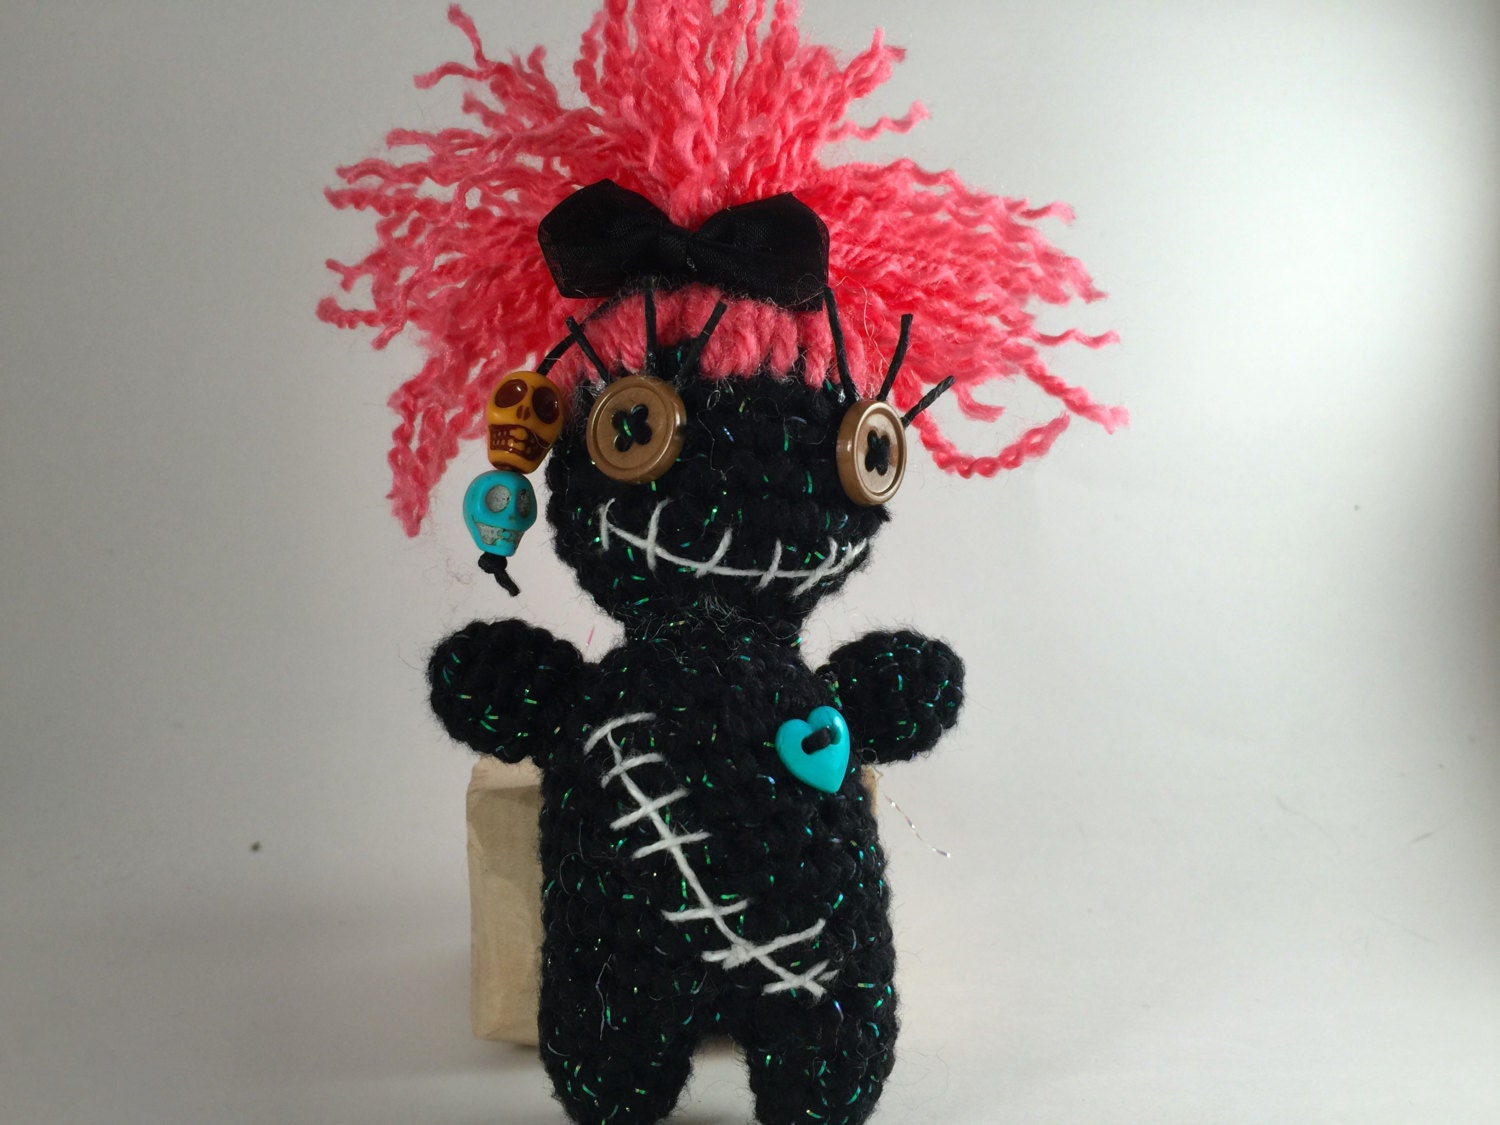 Creepy and Cute Voodoo Doll Pink and Black Voodoo Doll